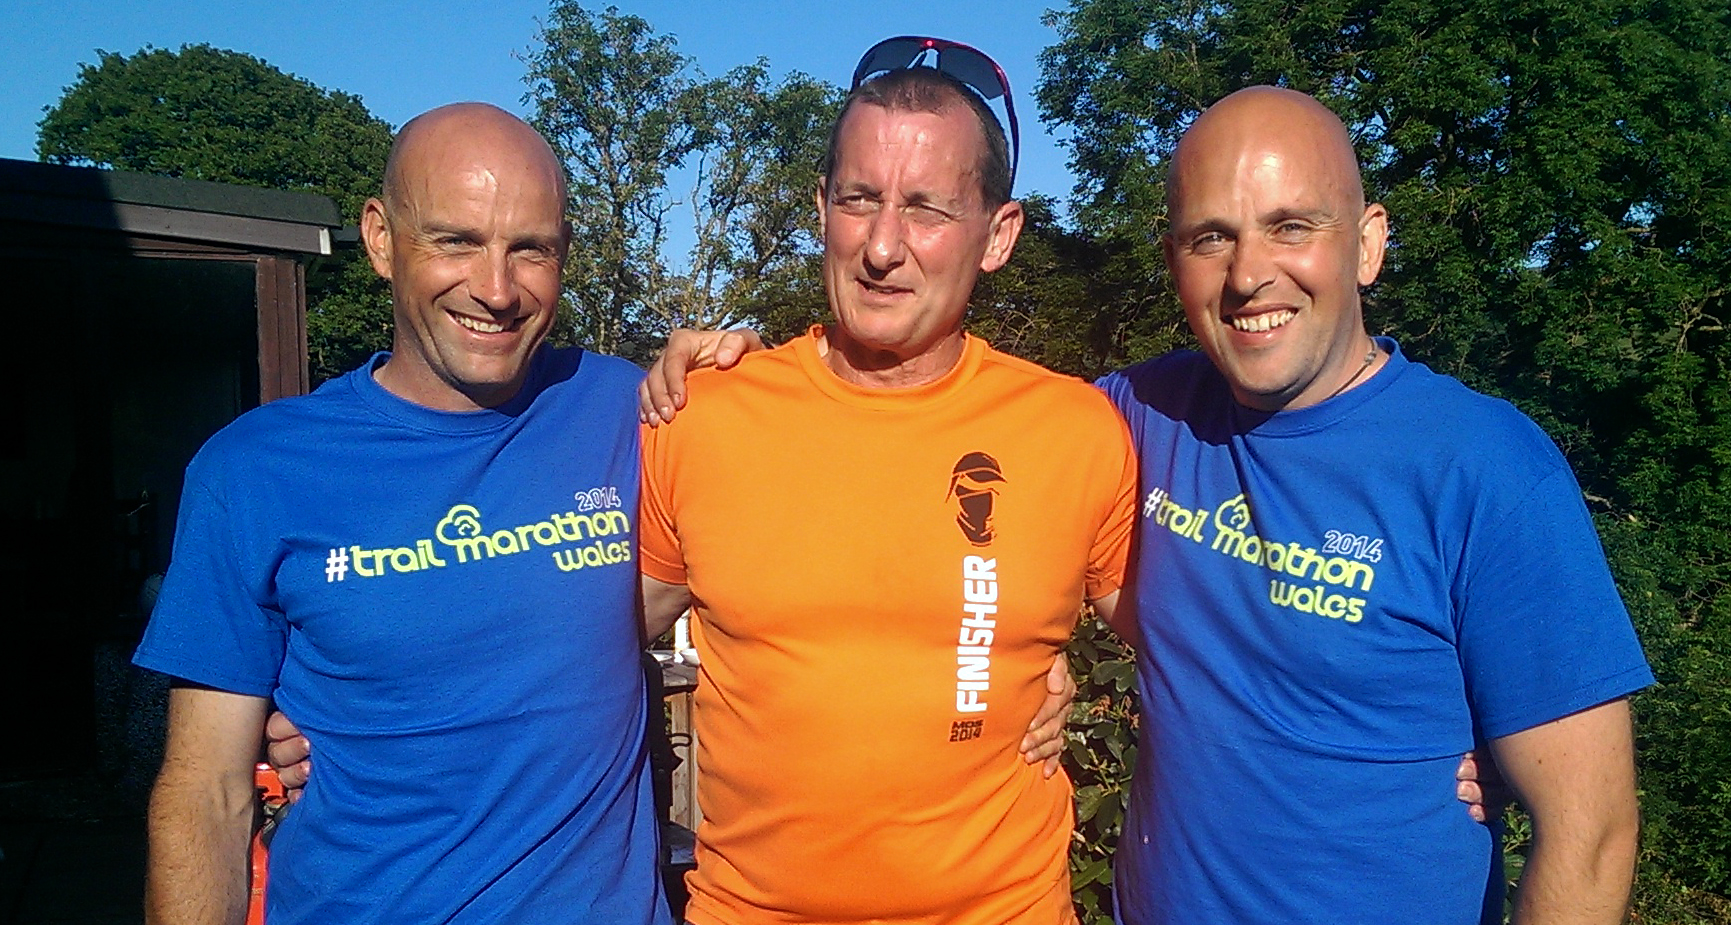 Phil, Andrew and I, from Tent 96 in Marathon des Sables, all together for TMW 2014